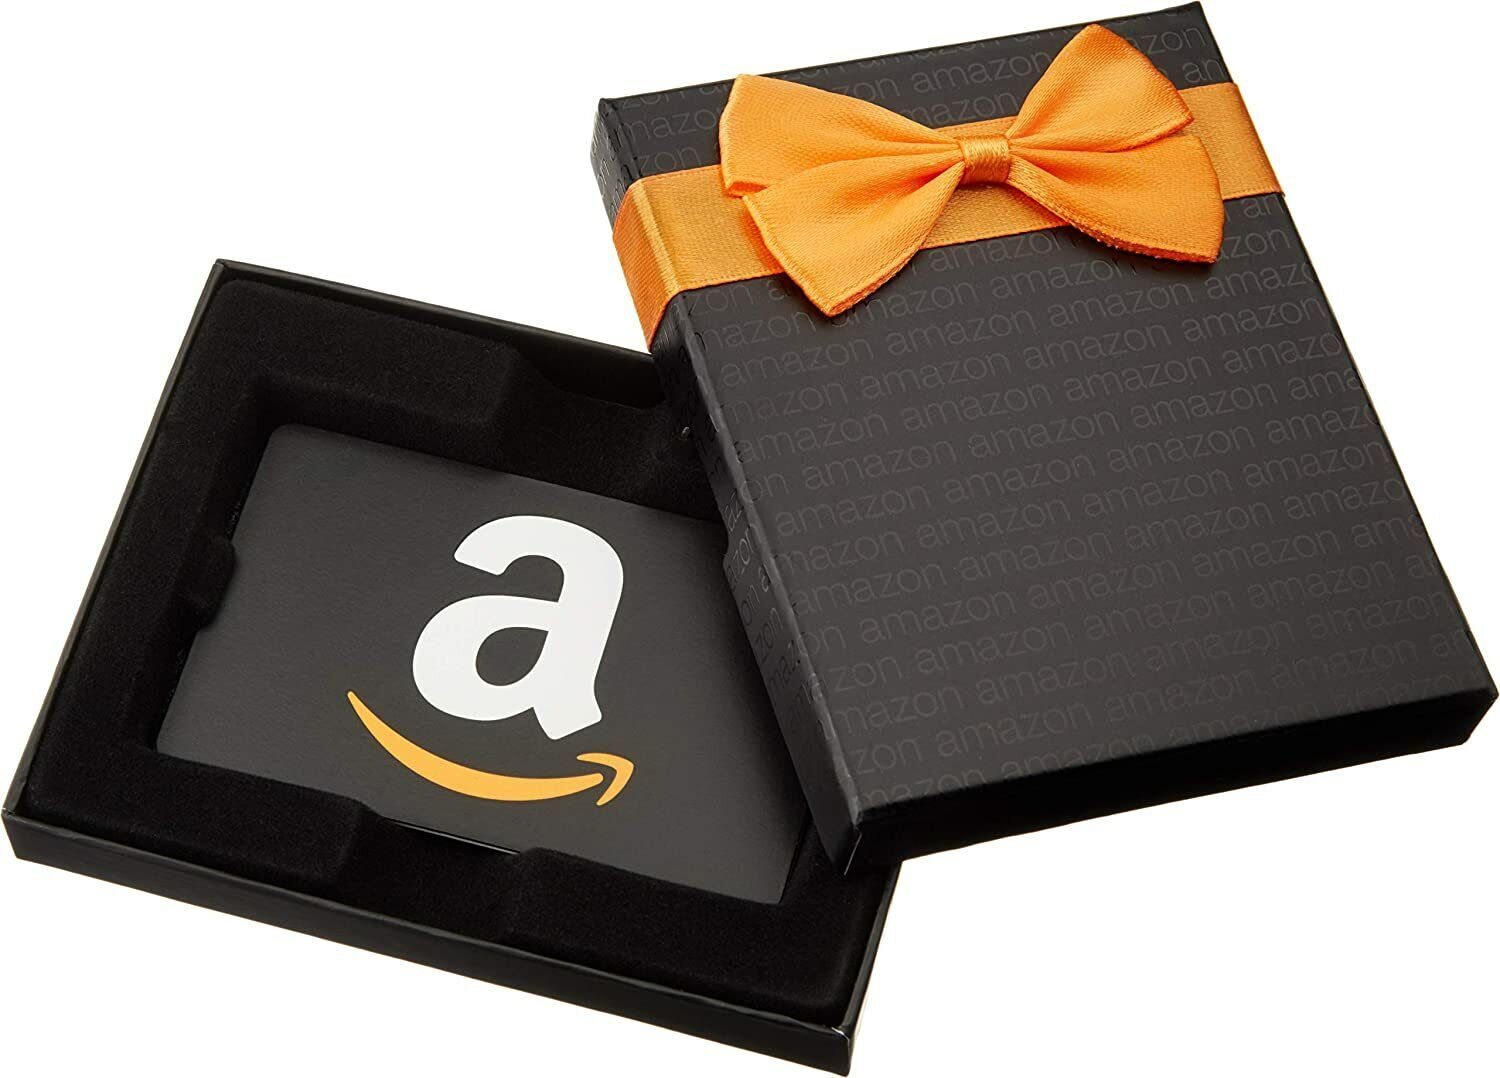 200 Amazon Gift Card Mail Delivery - $198.99